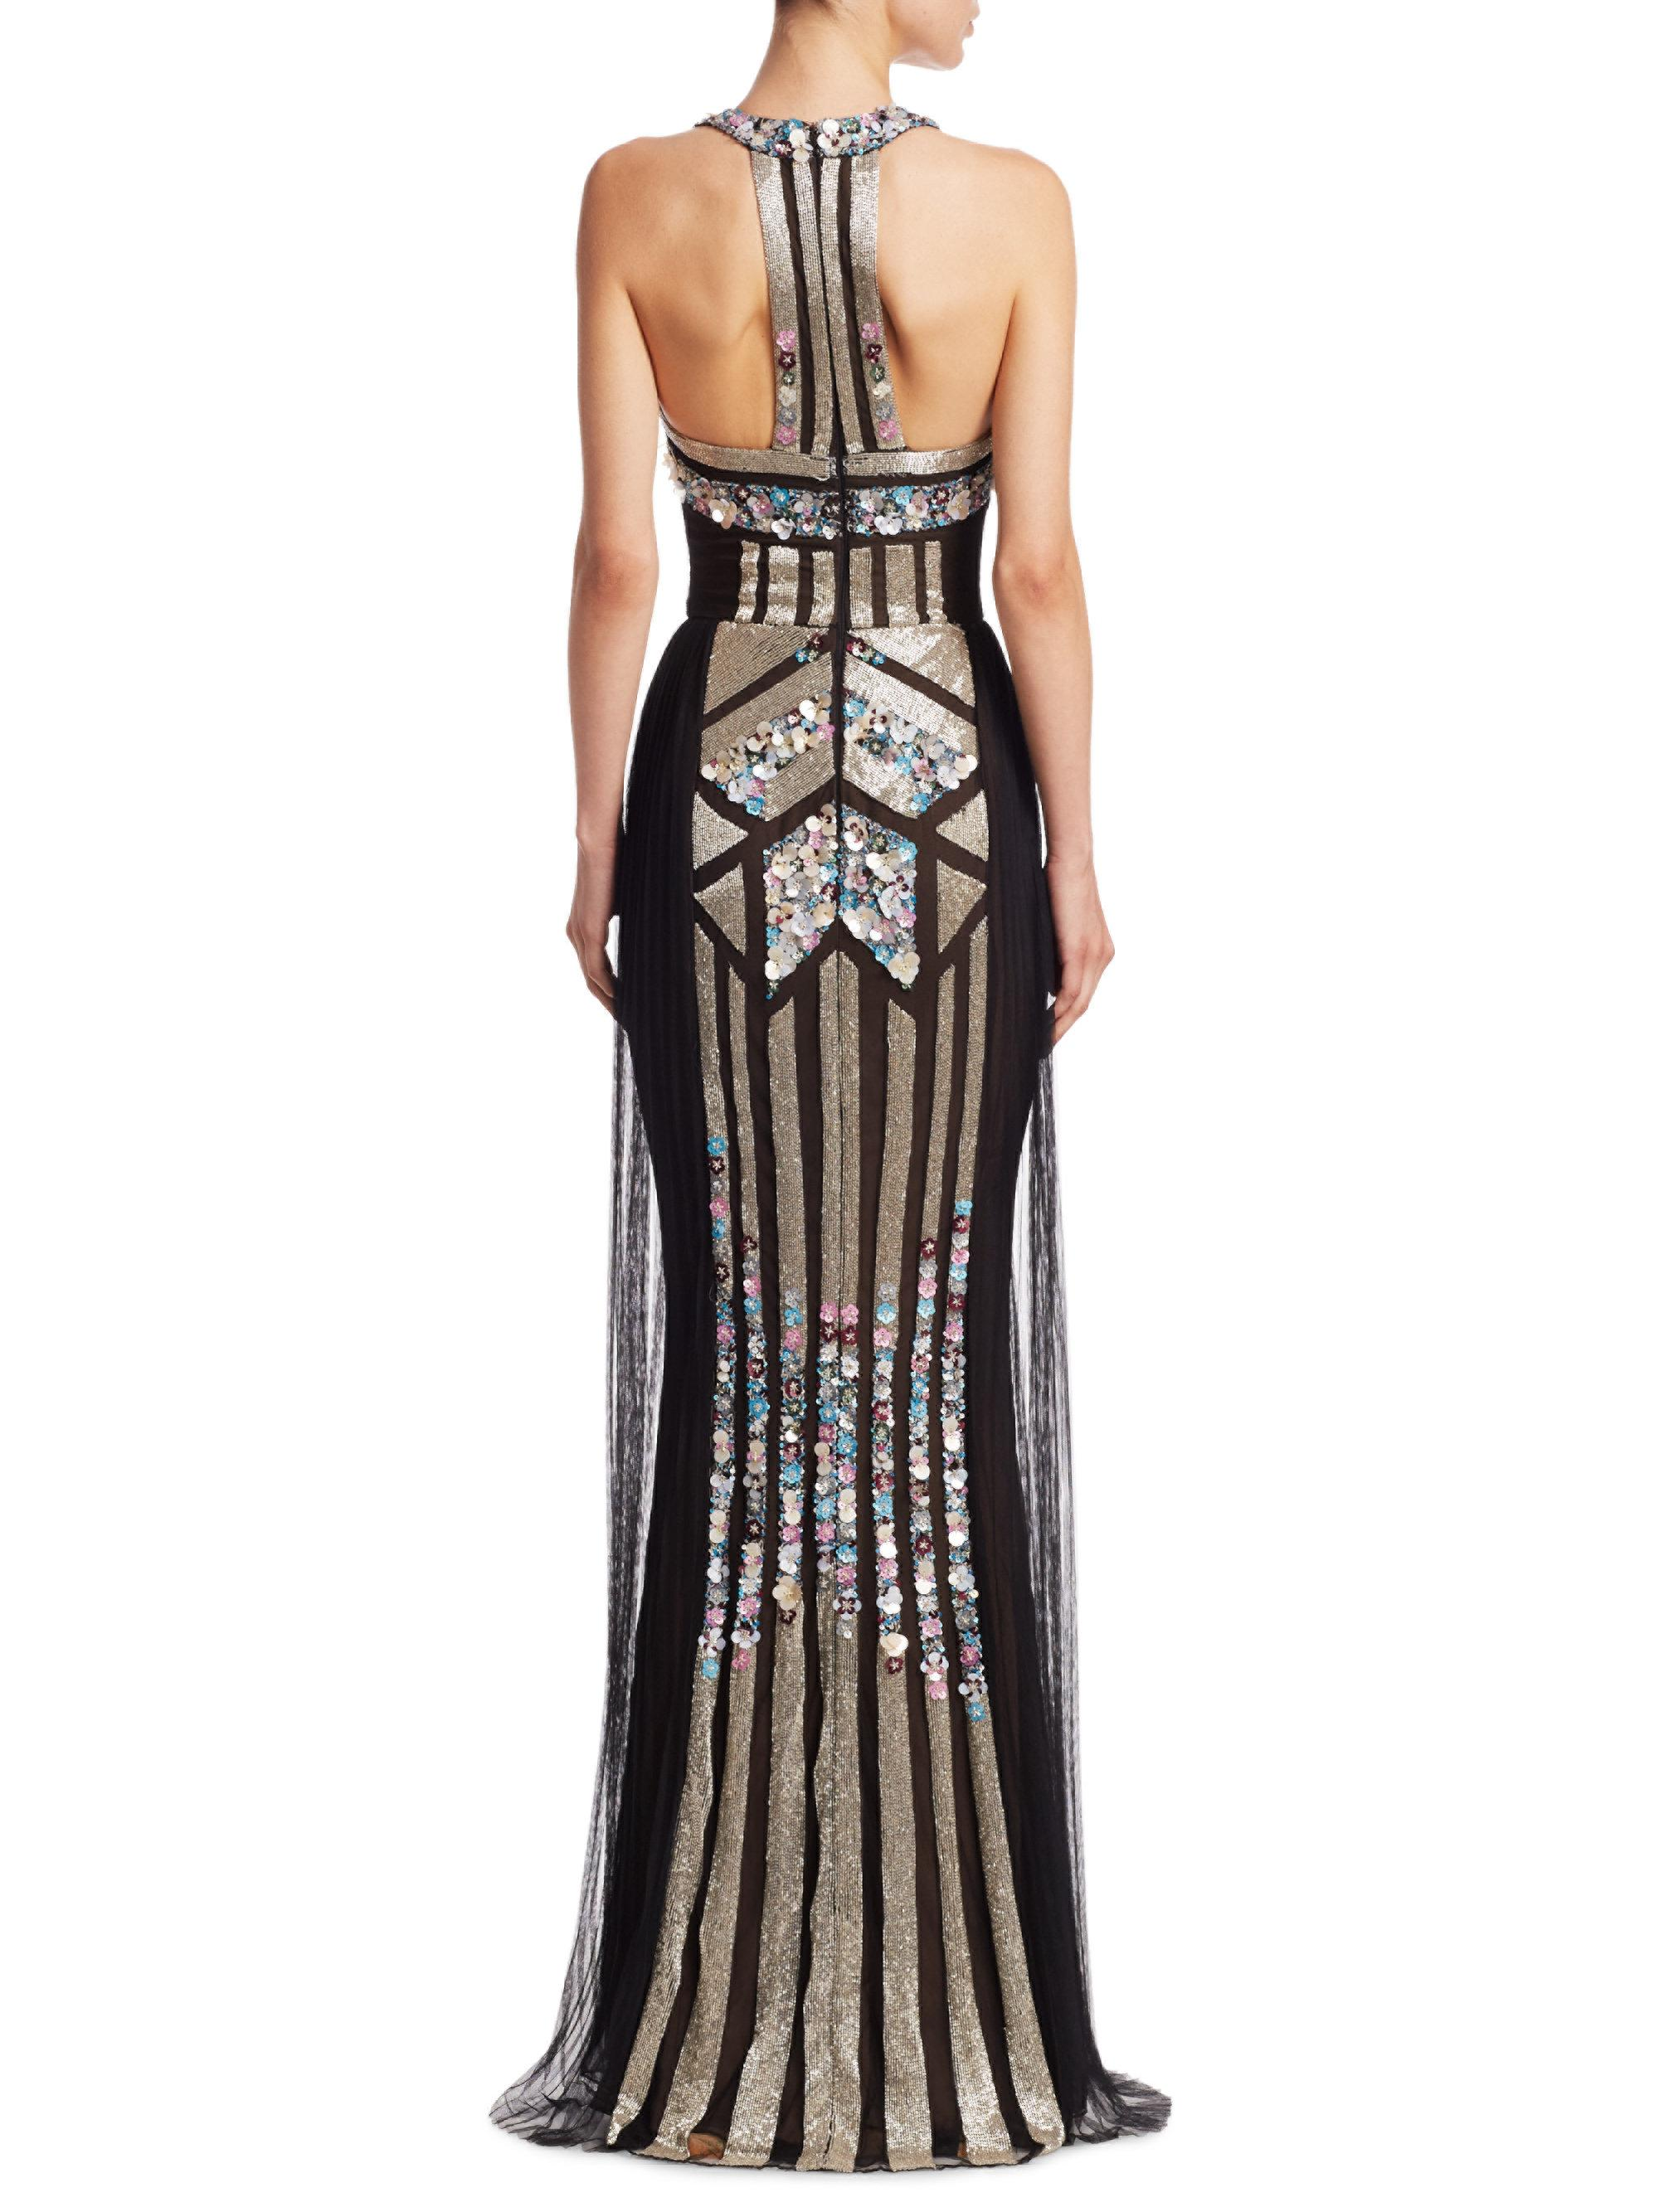 Lyst - Notte By Marchesa Art Deco Sequin Mermaid Gown in Black